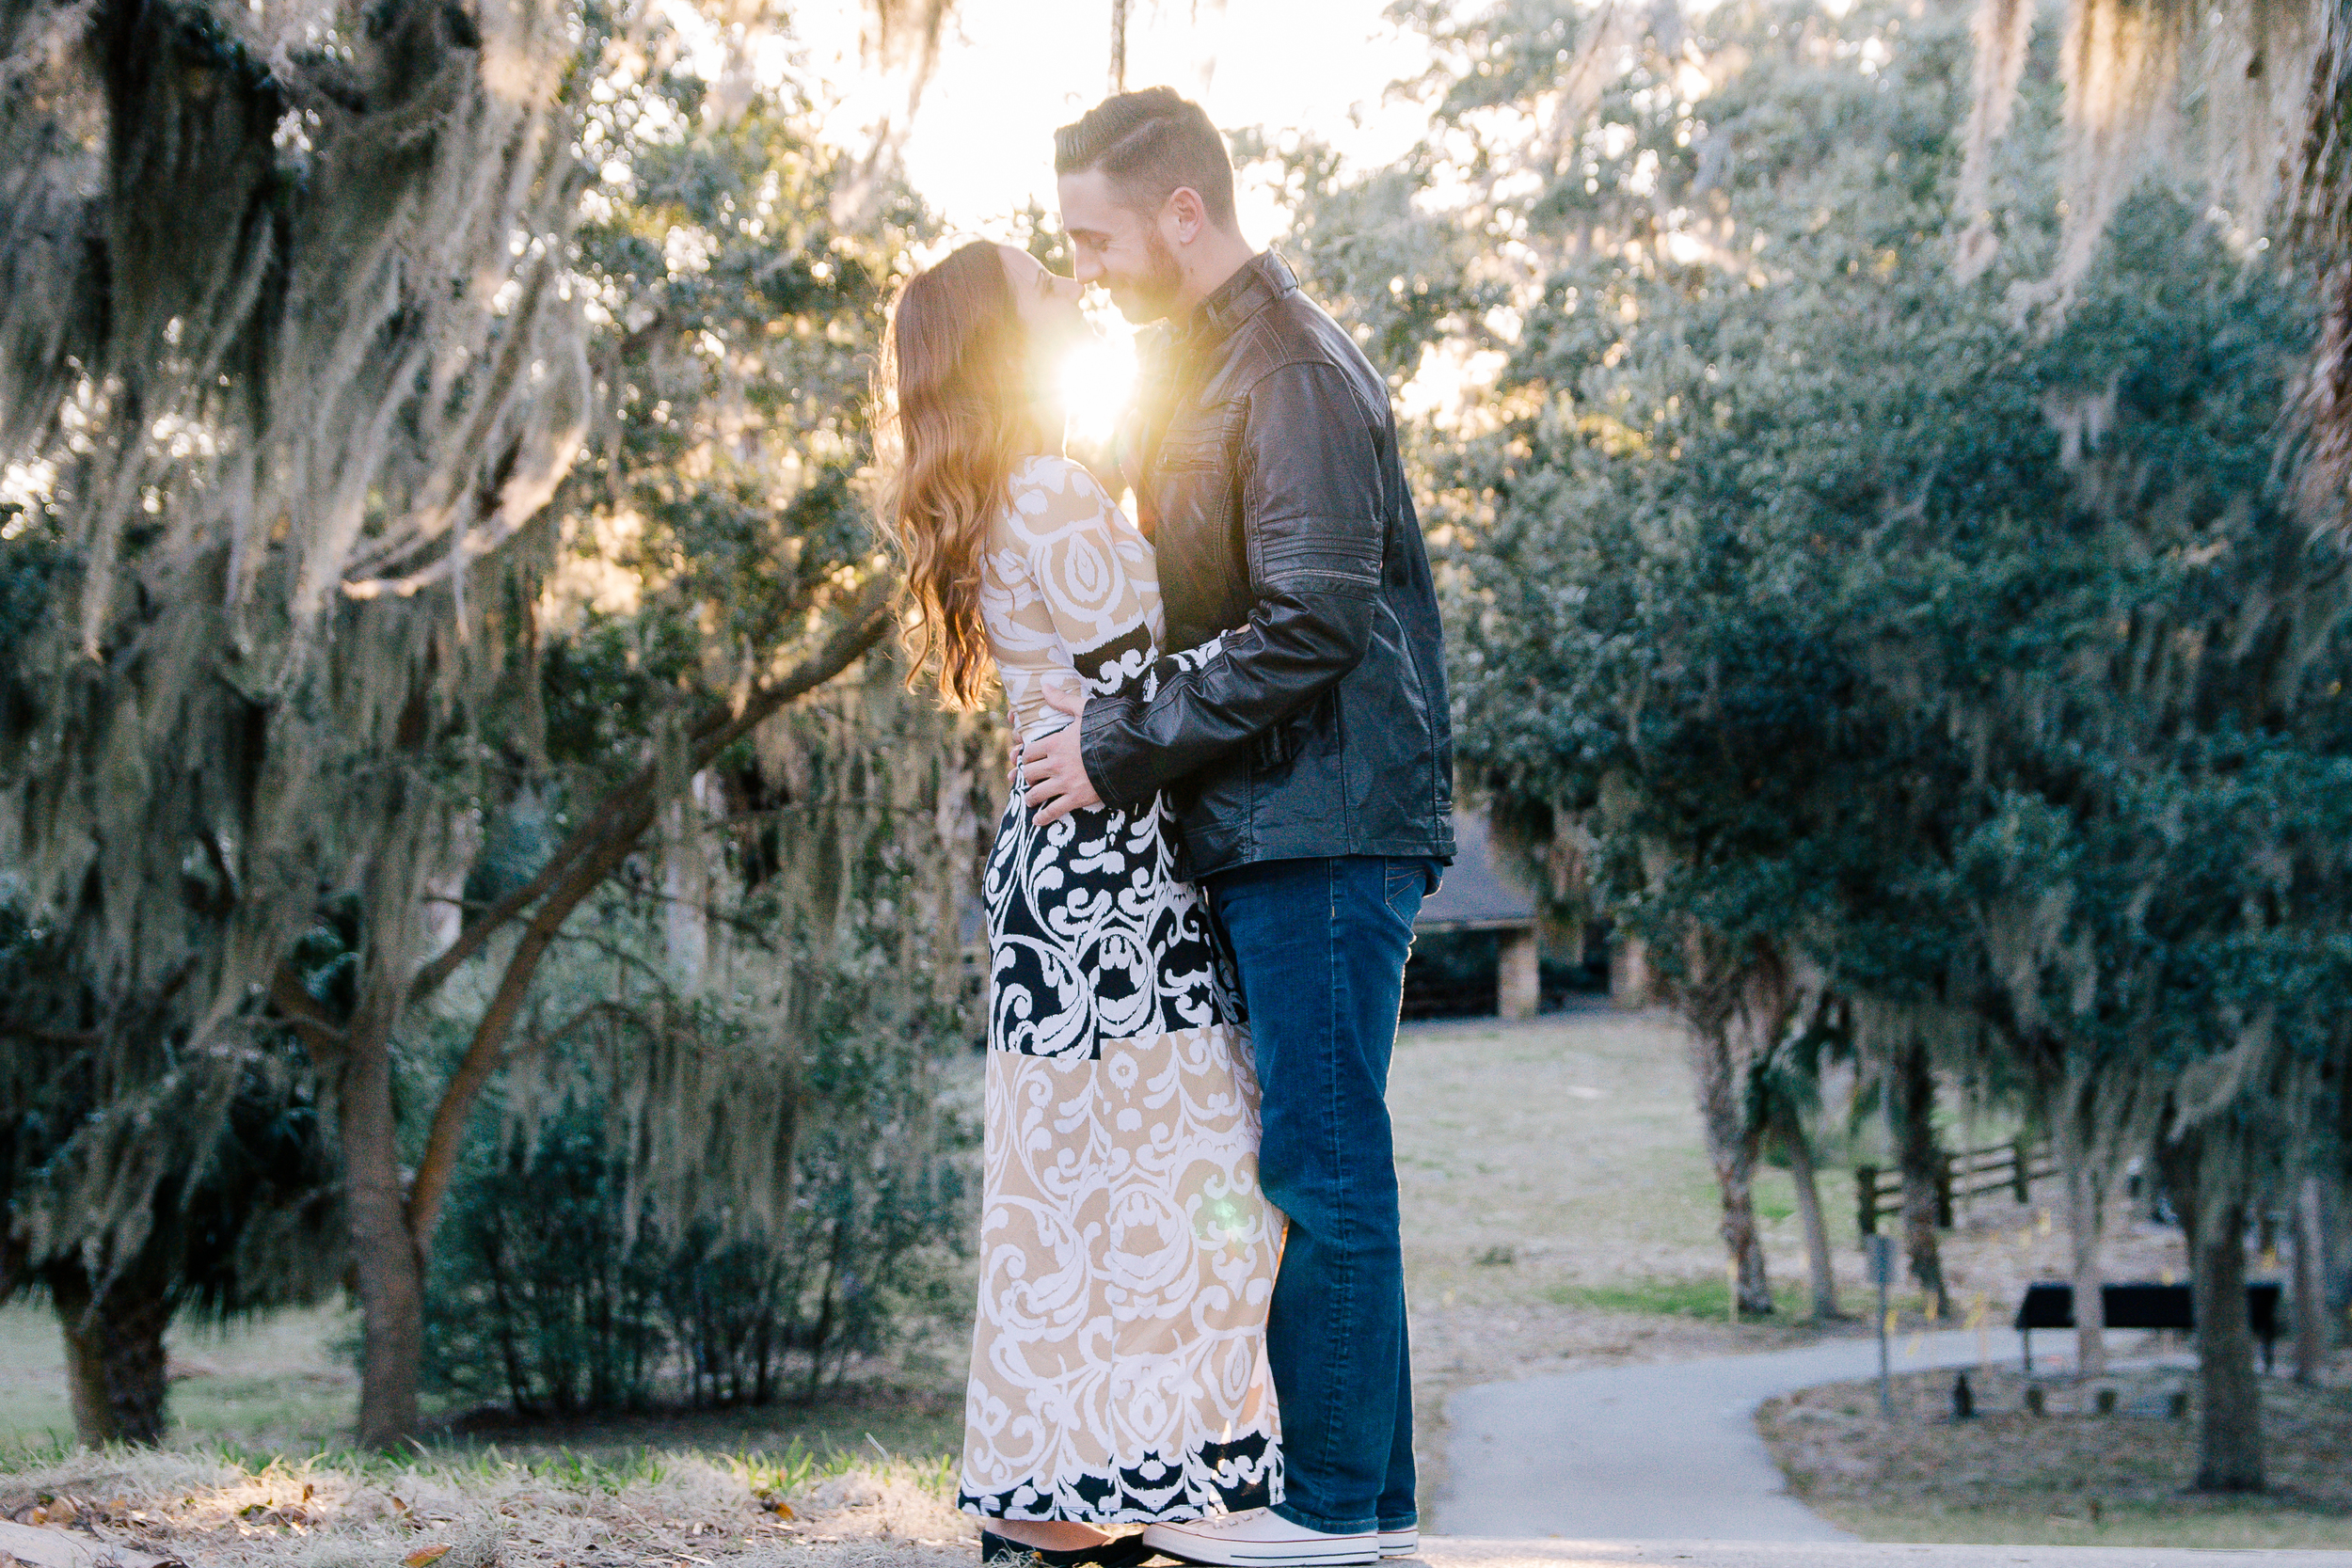 Tampa engagement session at Phillipe Park in Safety Harbor, Fl. Tampa wedding photographer